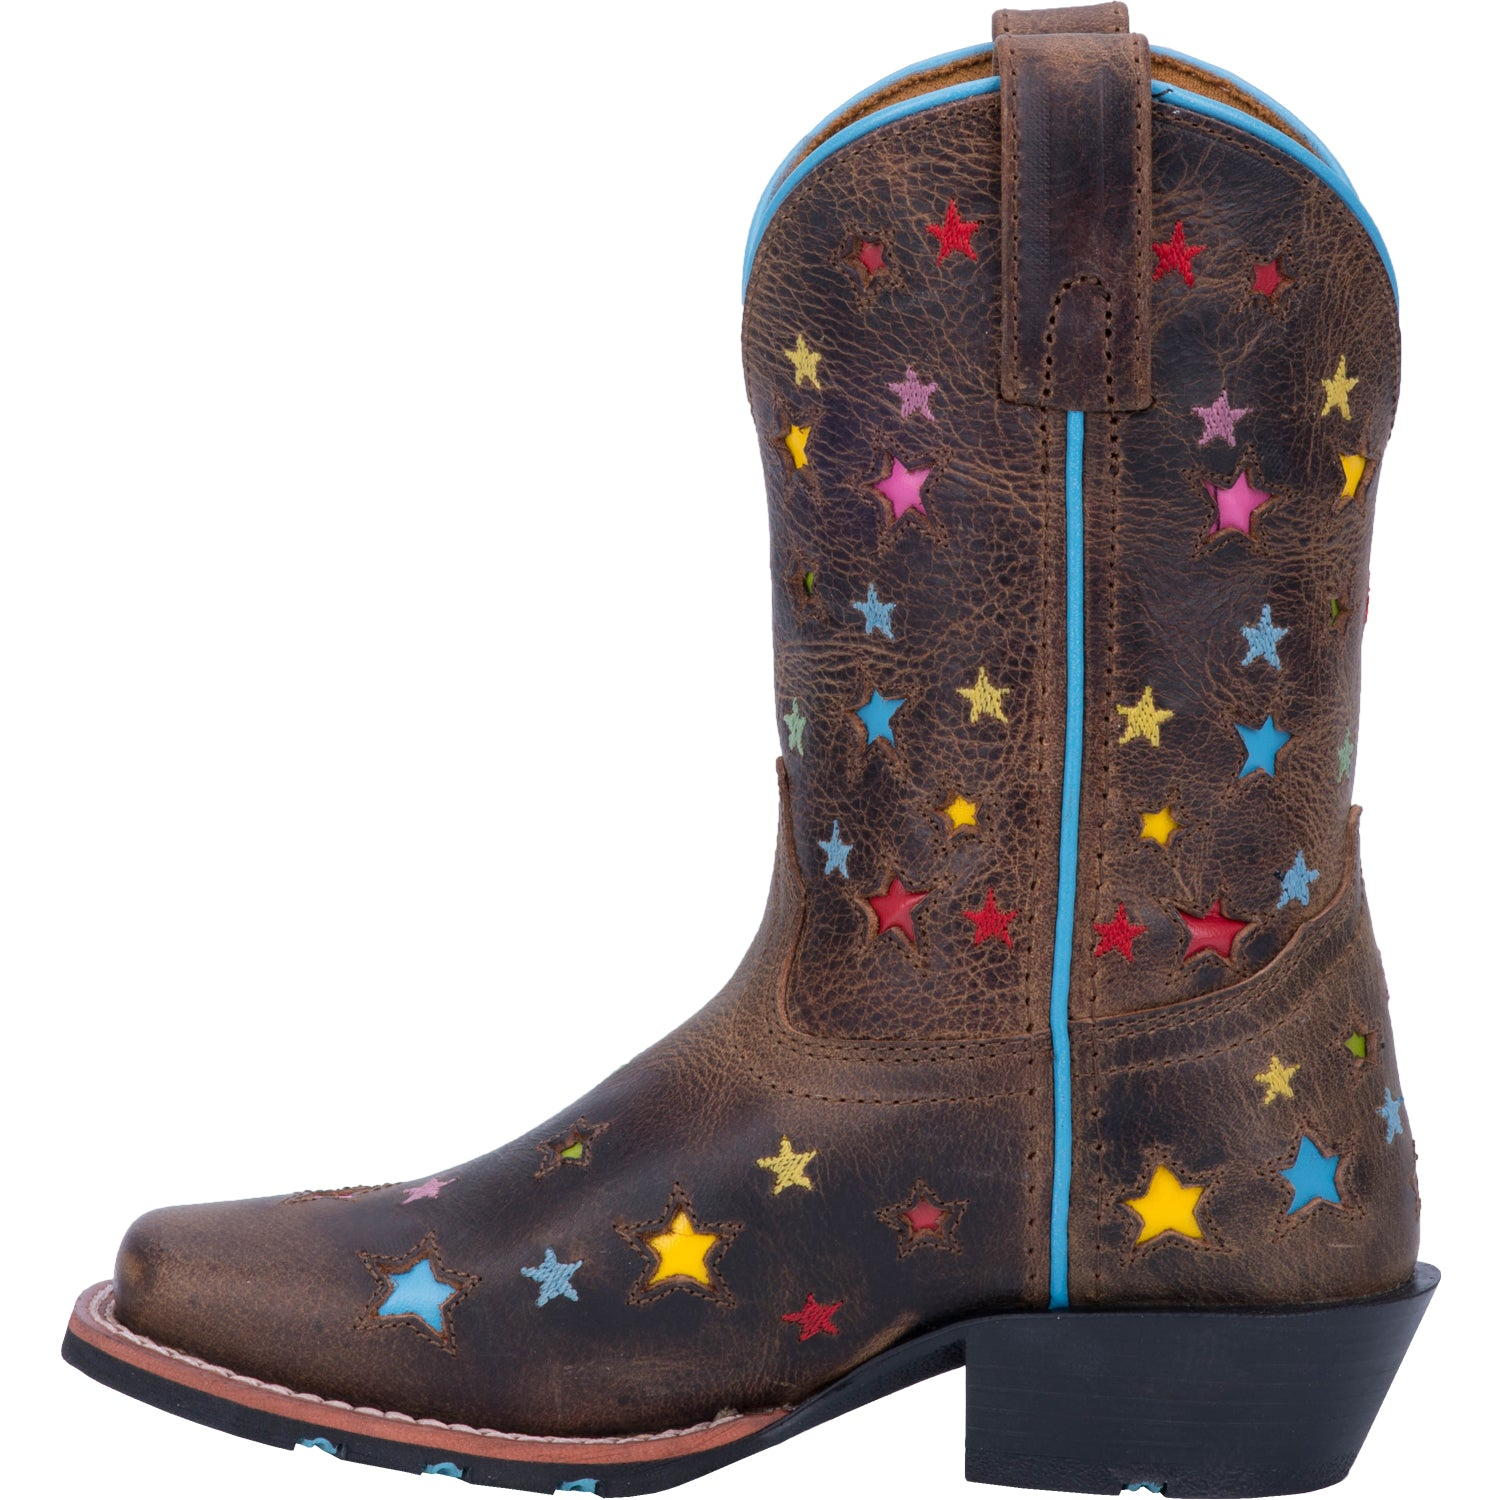 STARLETT LEATHER CHILDREN'S BOOT 4197205049386